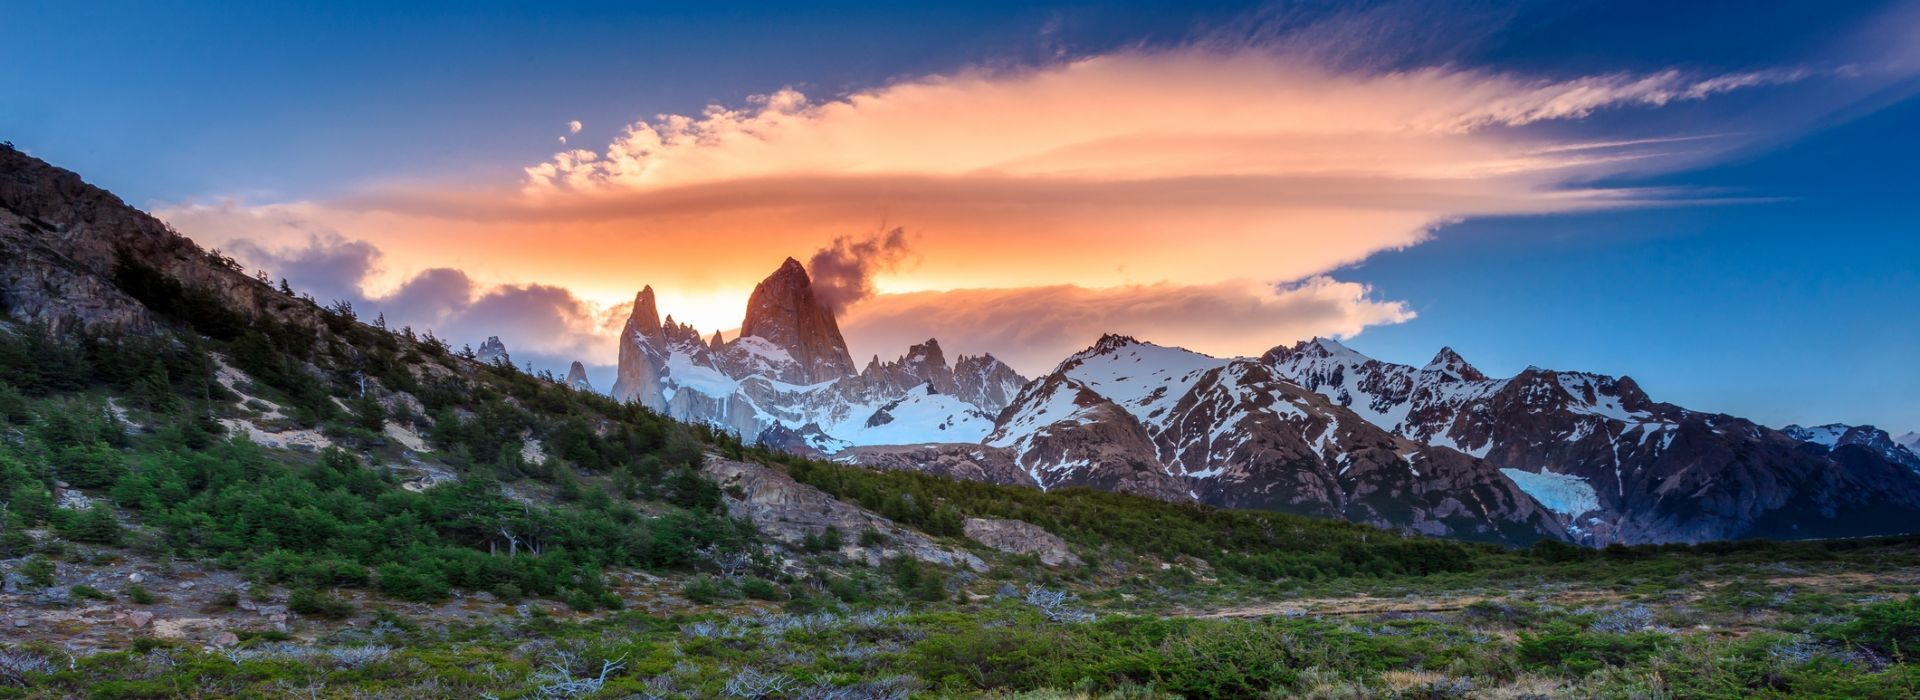 Beach, romance, getaways and relaxation Tours in Argentina